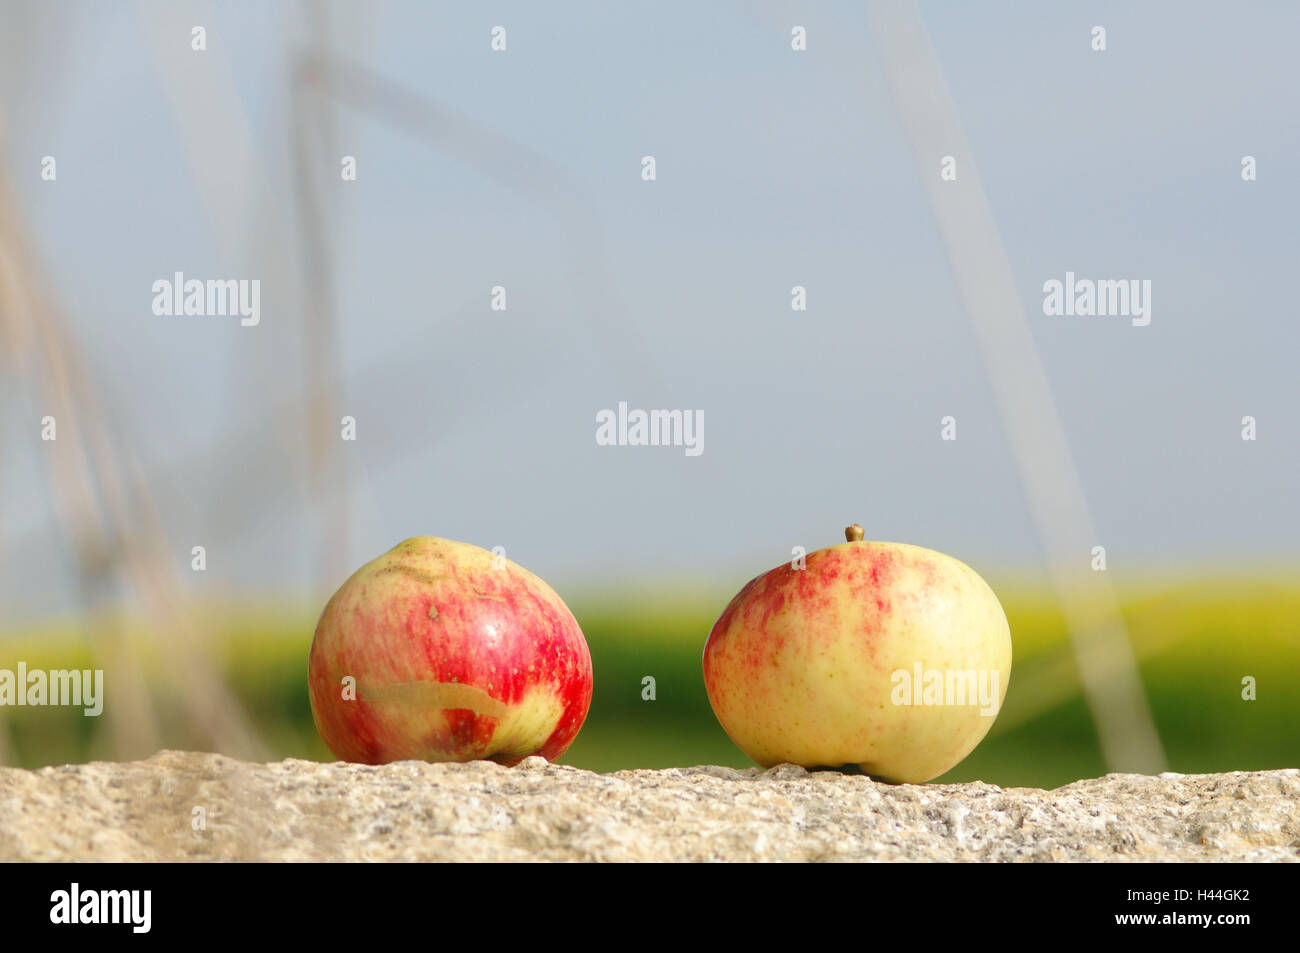 More poorly, apples, - Stock Image